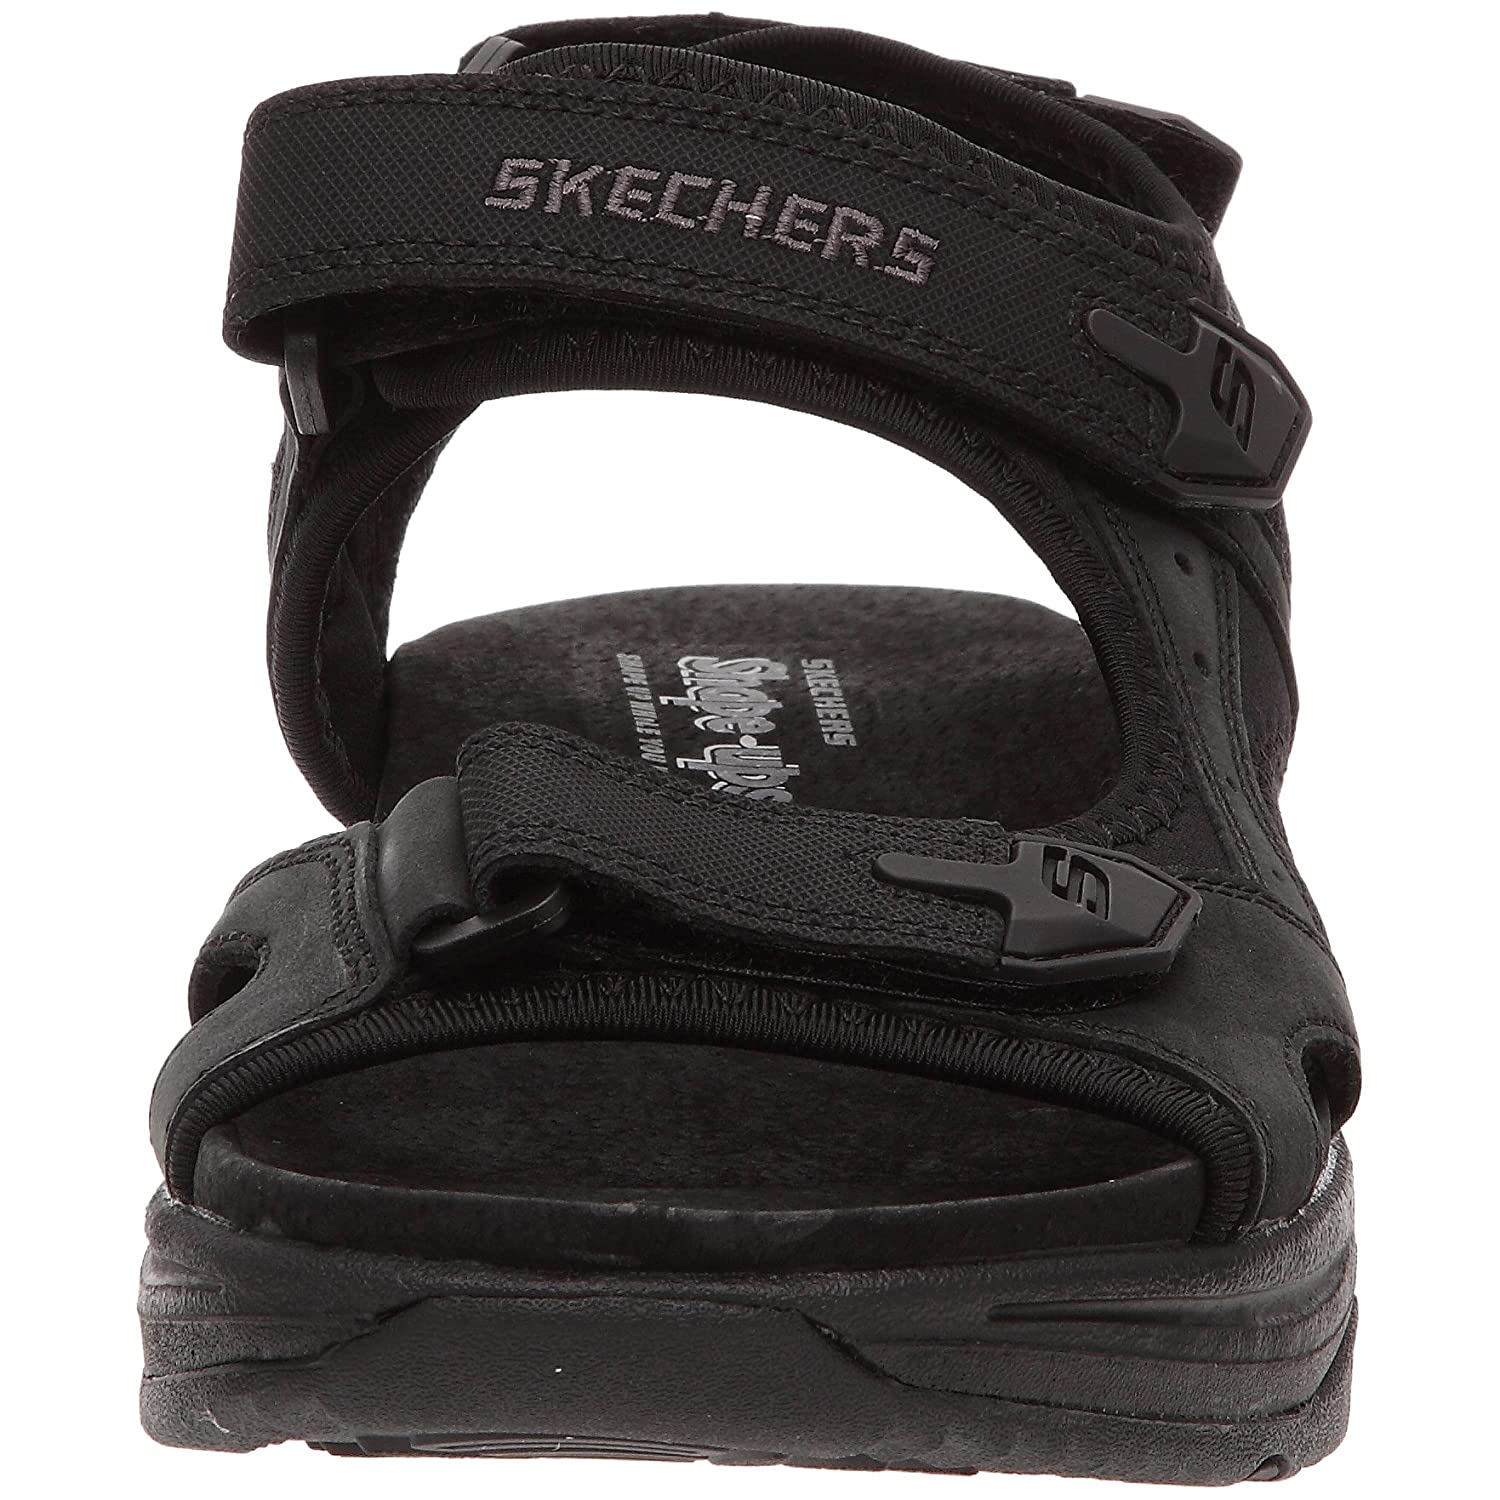 Skechers Sandali Mens Amazon rPCSOMBjBW